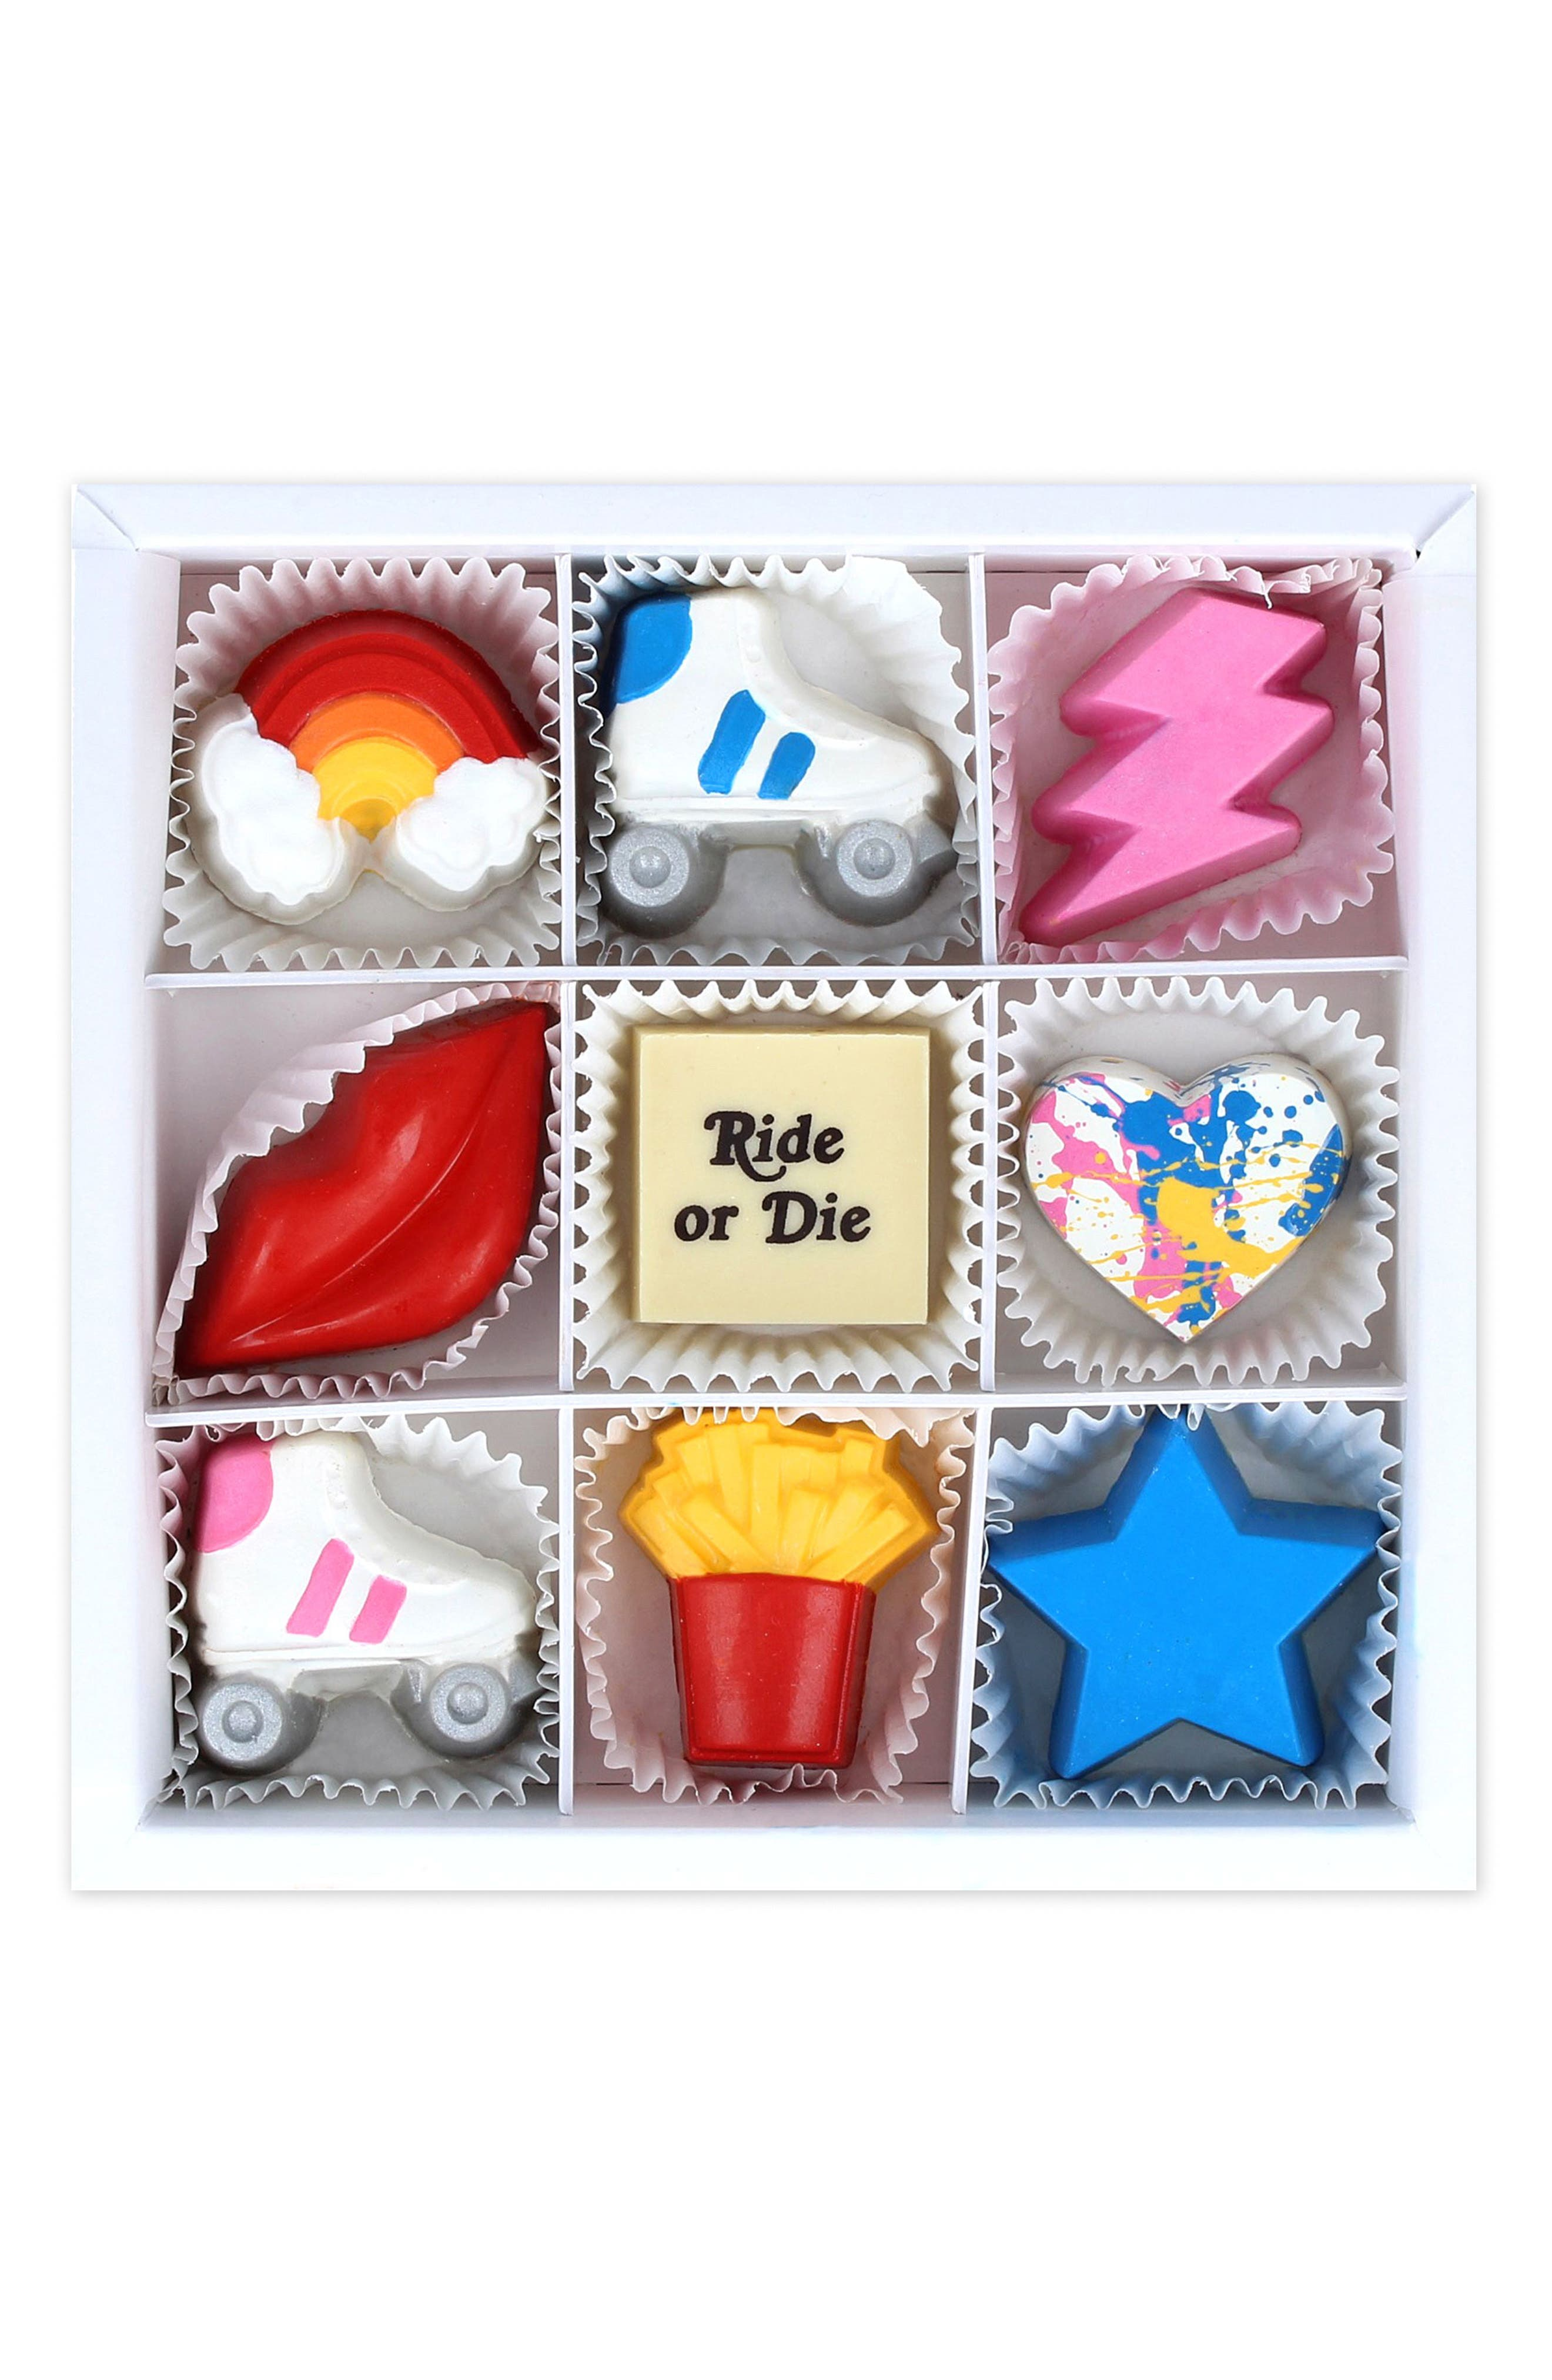 MAGGIE LOUISE CONFECTIONS, Ride or Die 9-Piece Chocolate Set, Main thumbnail 1, color, 100